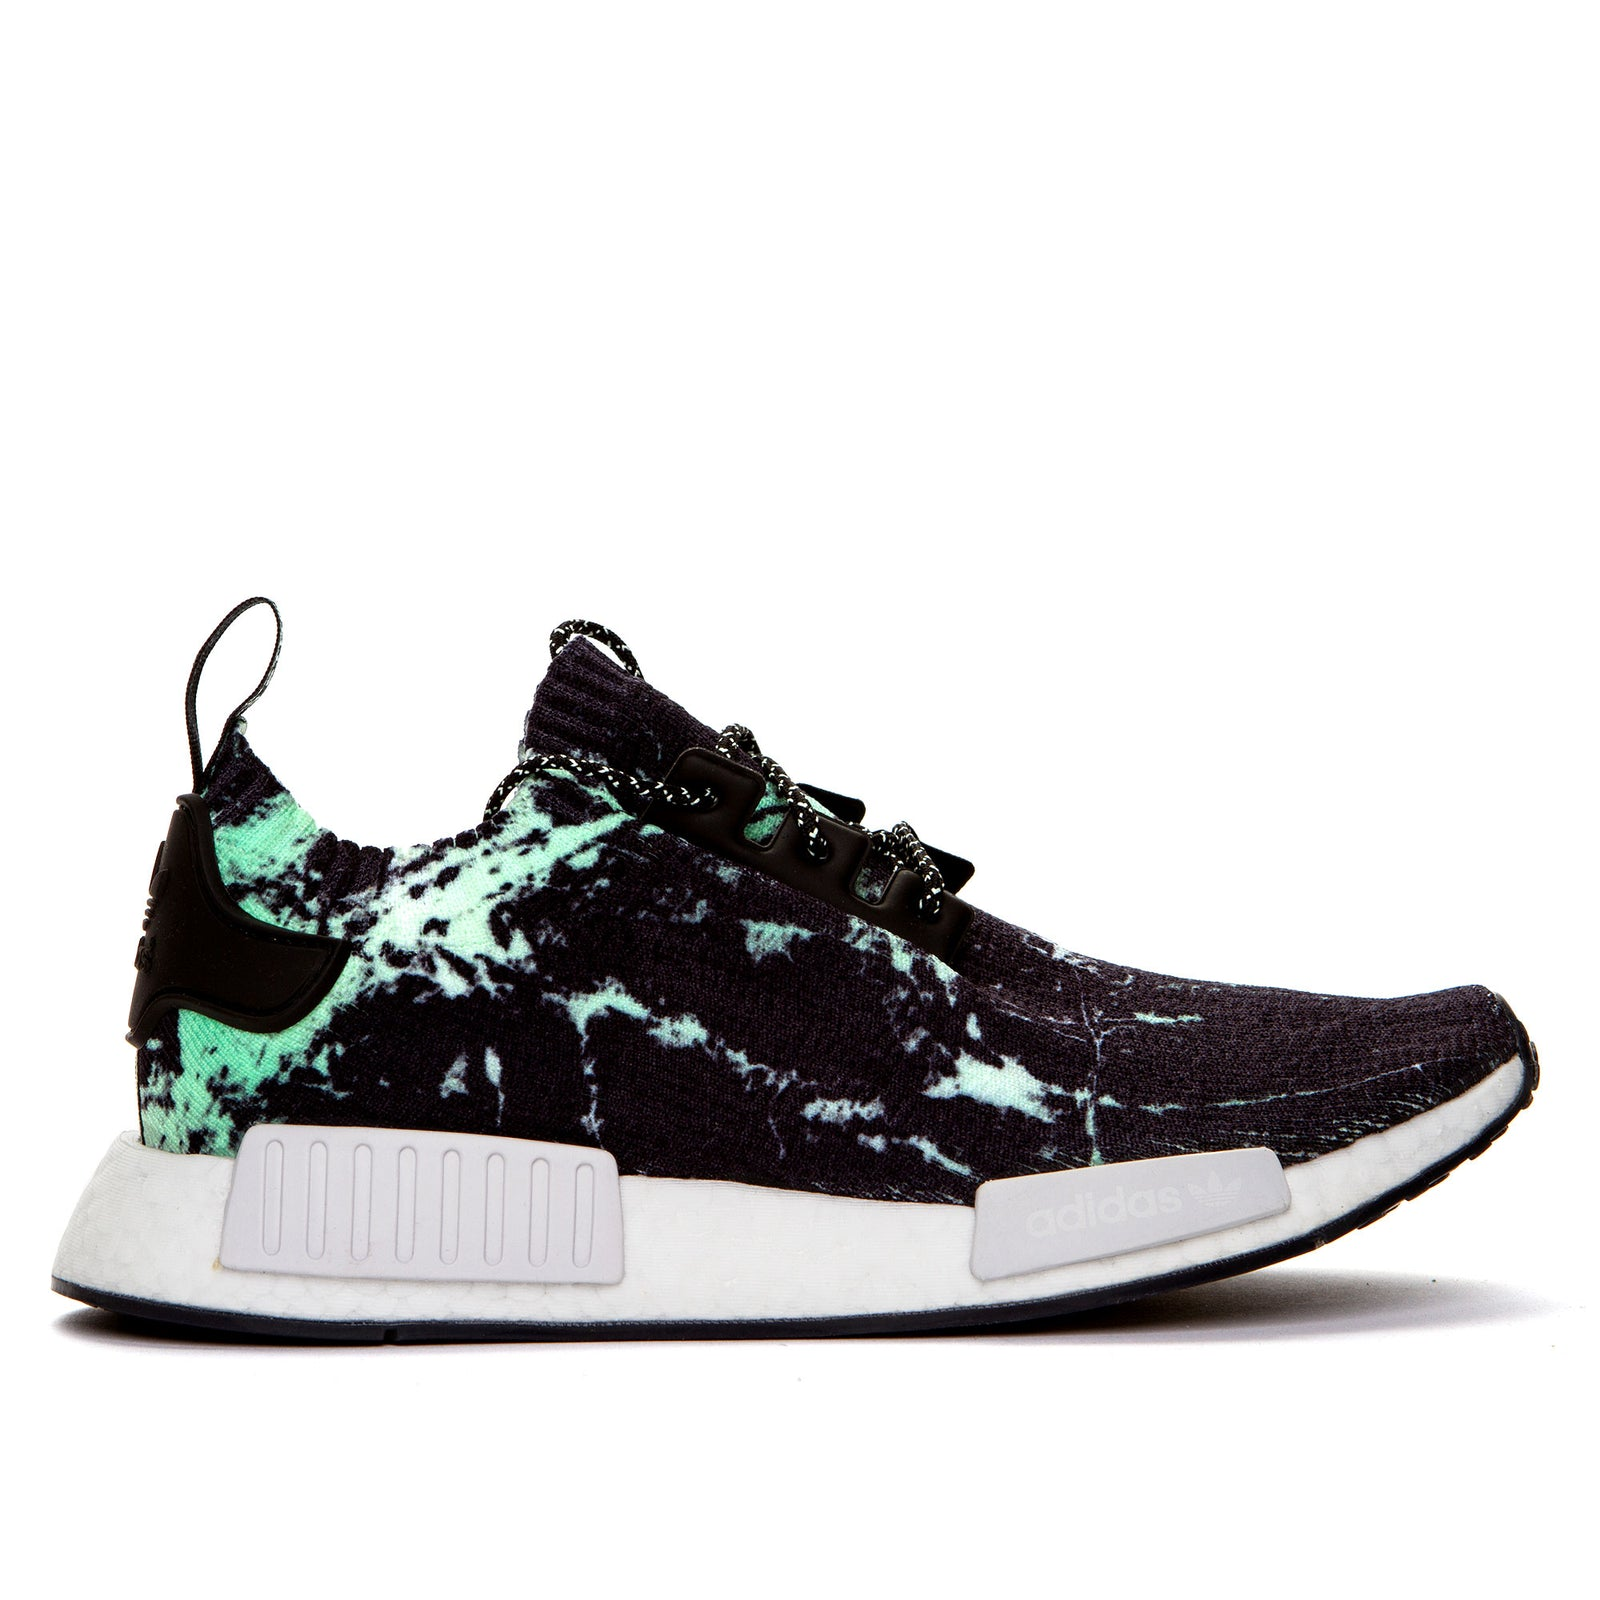 "Adidas NMD_R1 Primeknit Shoes ""Green Marble"""